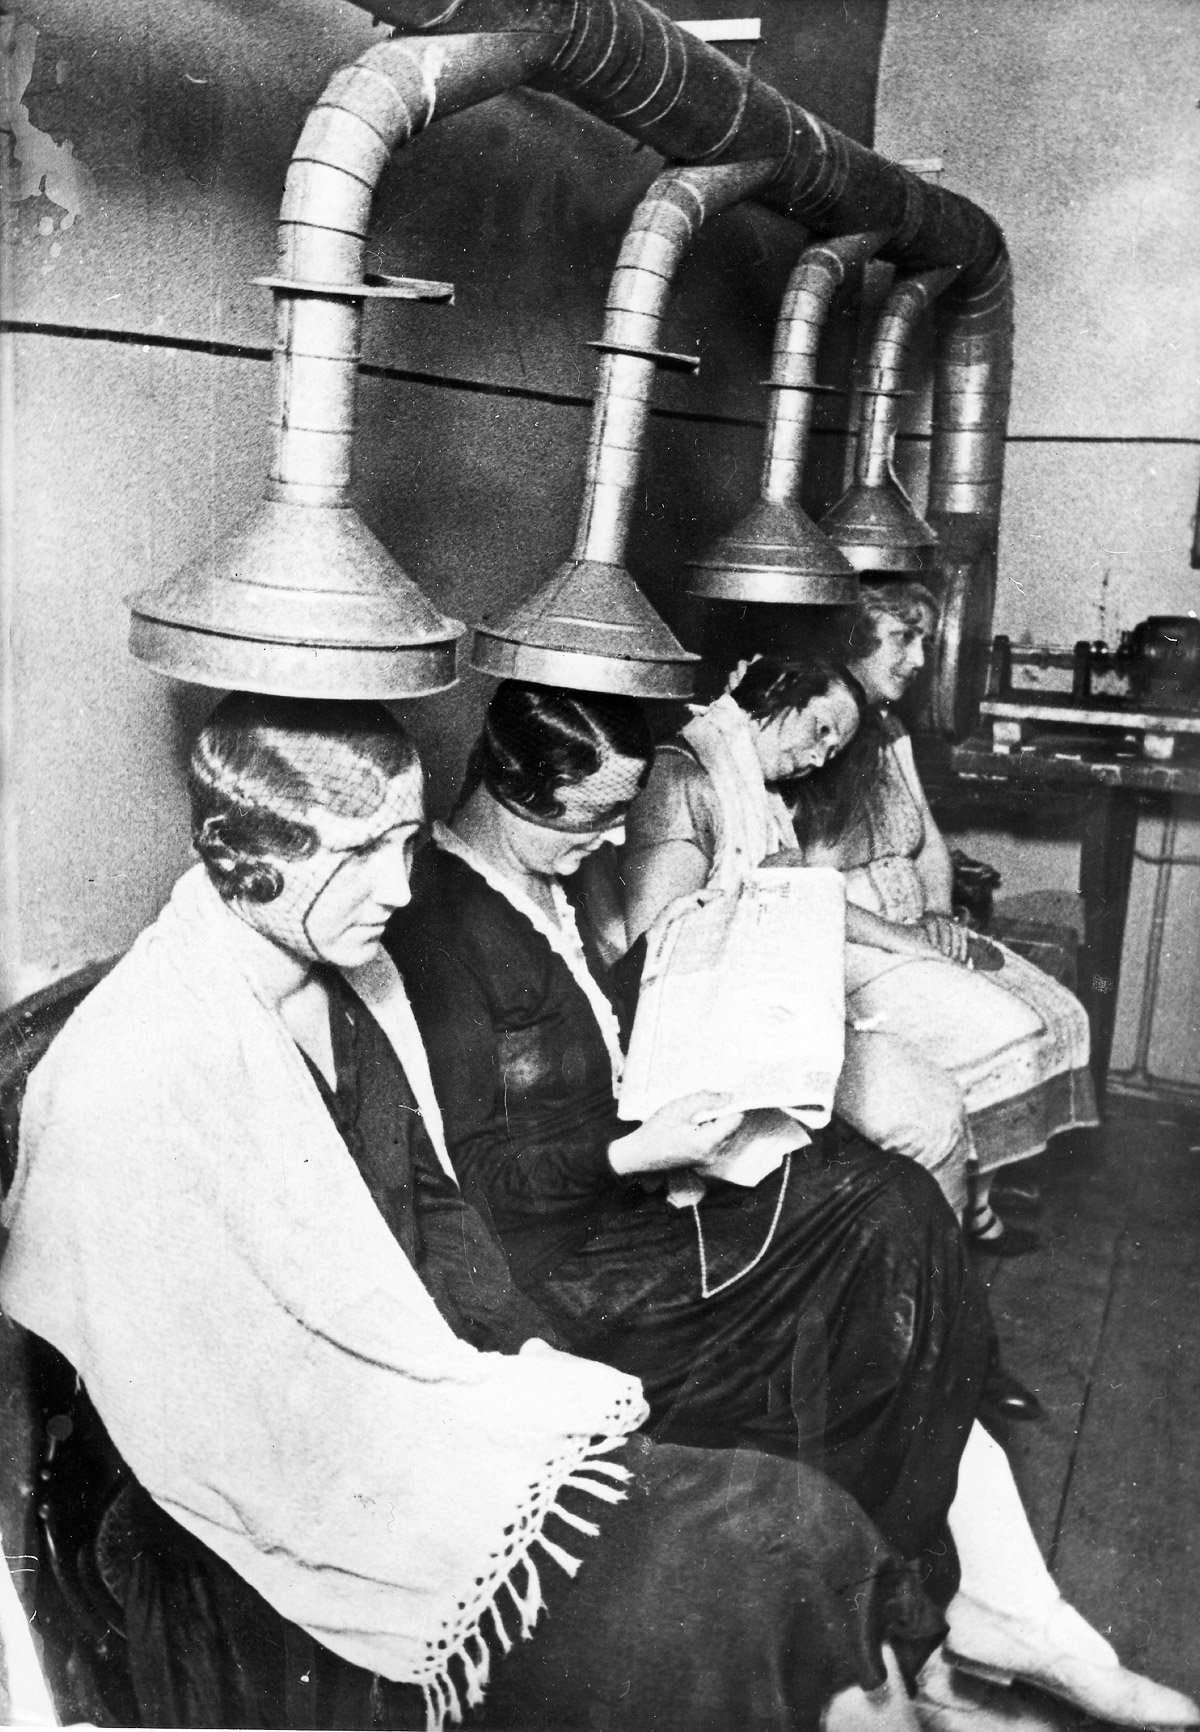 Russia; Moscow; women sitting under a hair dryer in a hairdresser; taken by Emil Strassberg - 1933